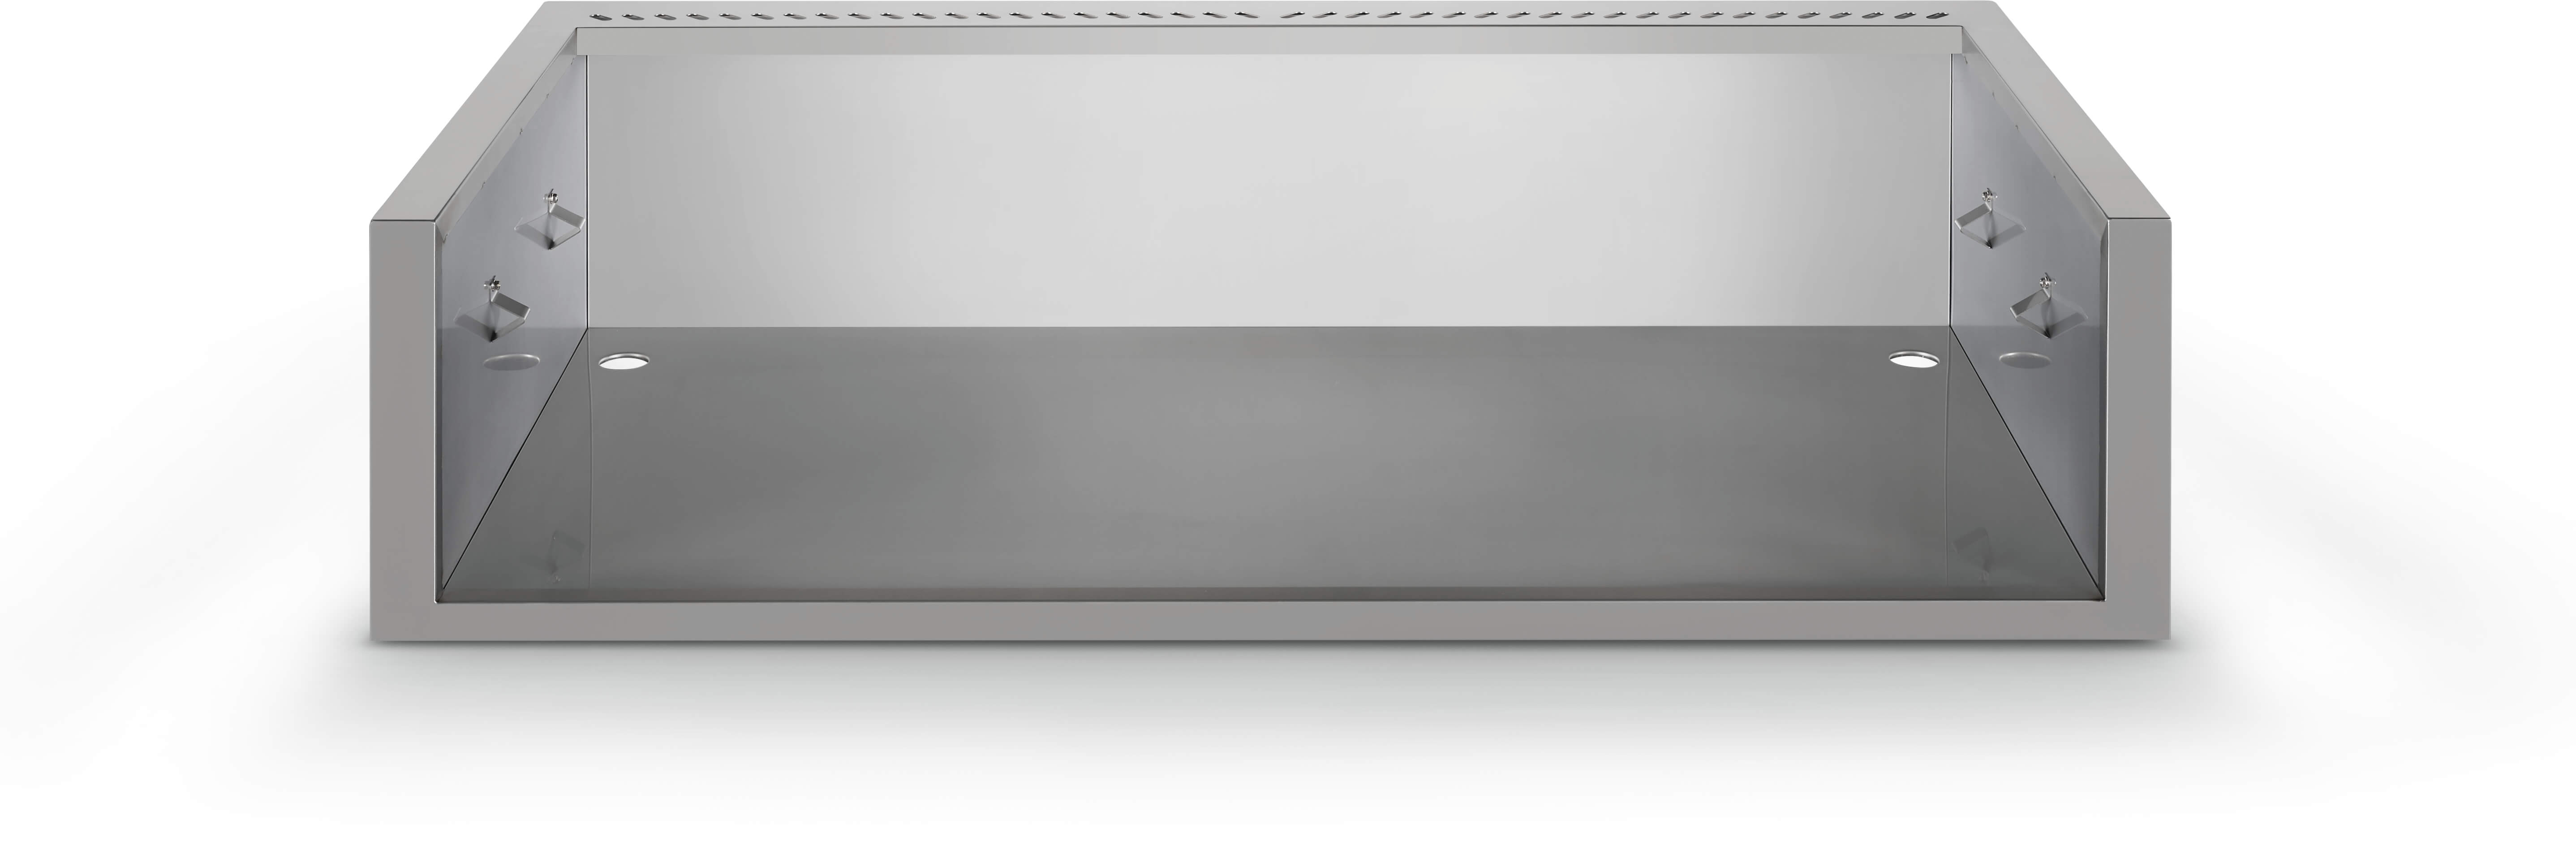 Zero Clearance Liner for Built-in 700 Series 44